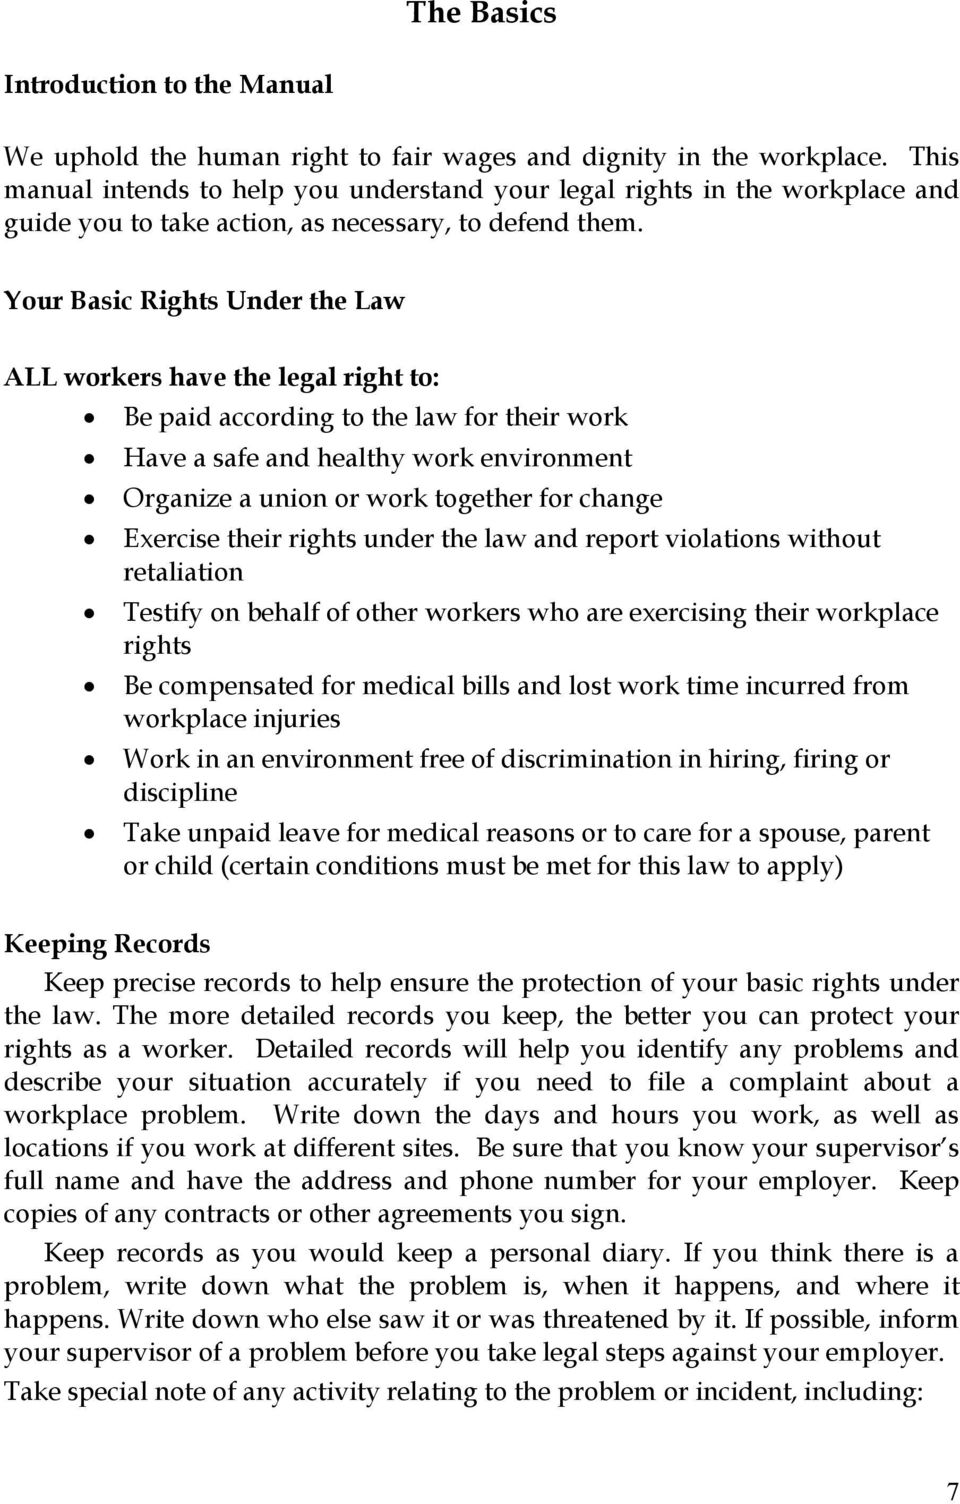 Your Basic Rights Under the Law ALL workers have the legal right to: Be paid according to the law for their work Have a safe and healthy work environment Organize a union or work together for change